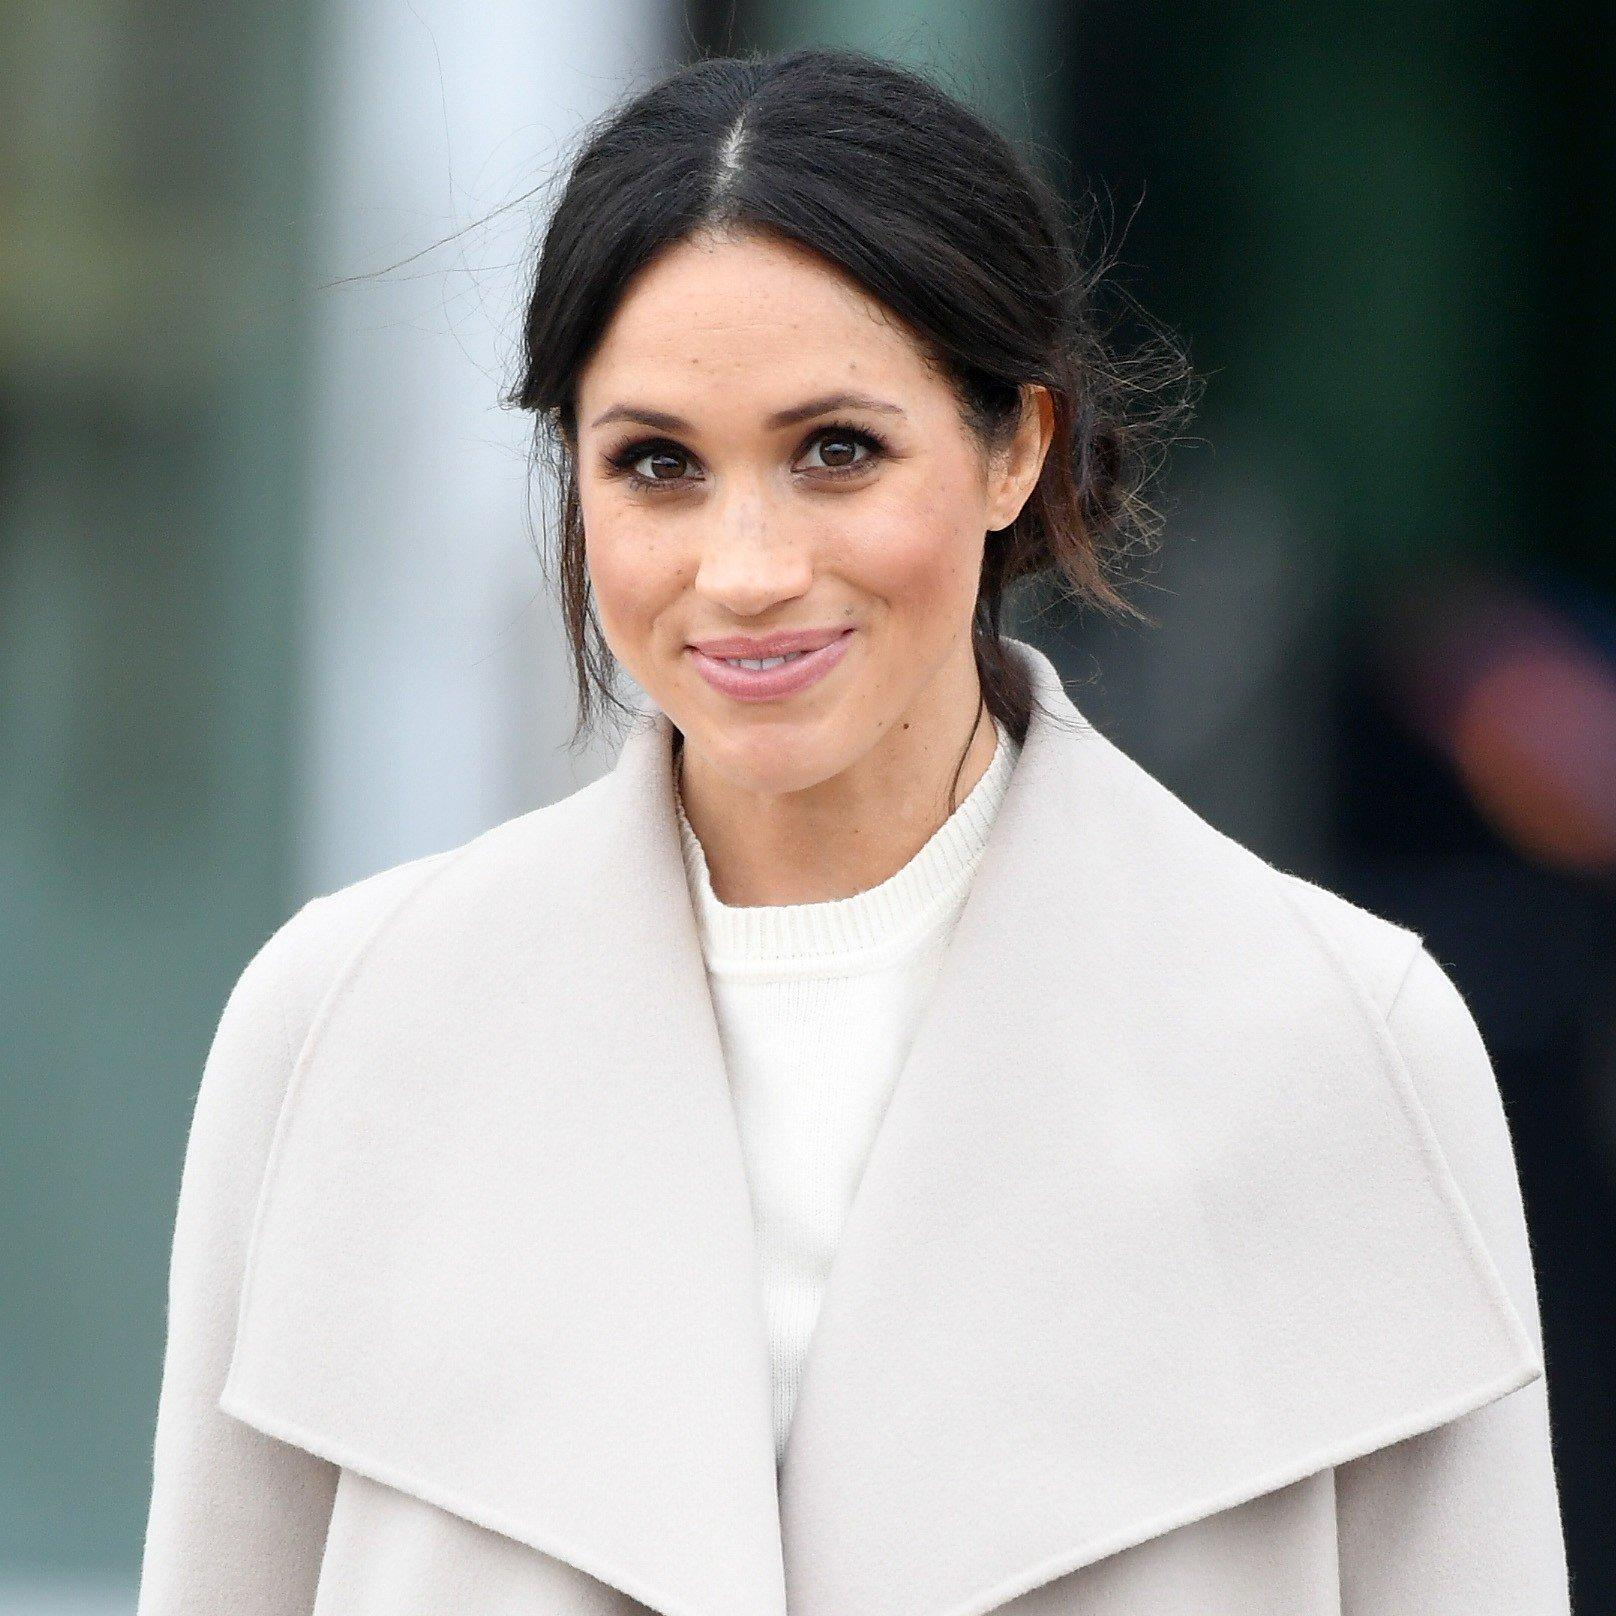 The 2 Royal Titles Meghan Markle Could Receive When She